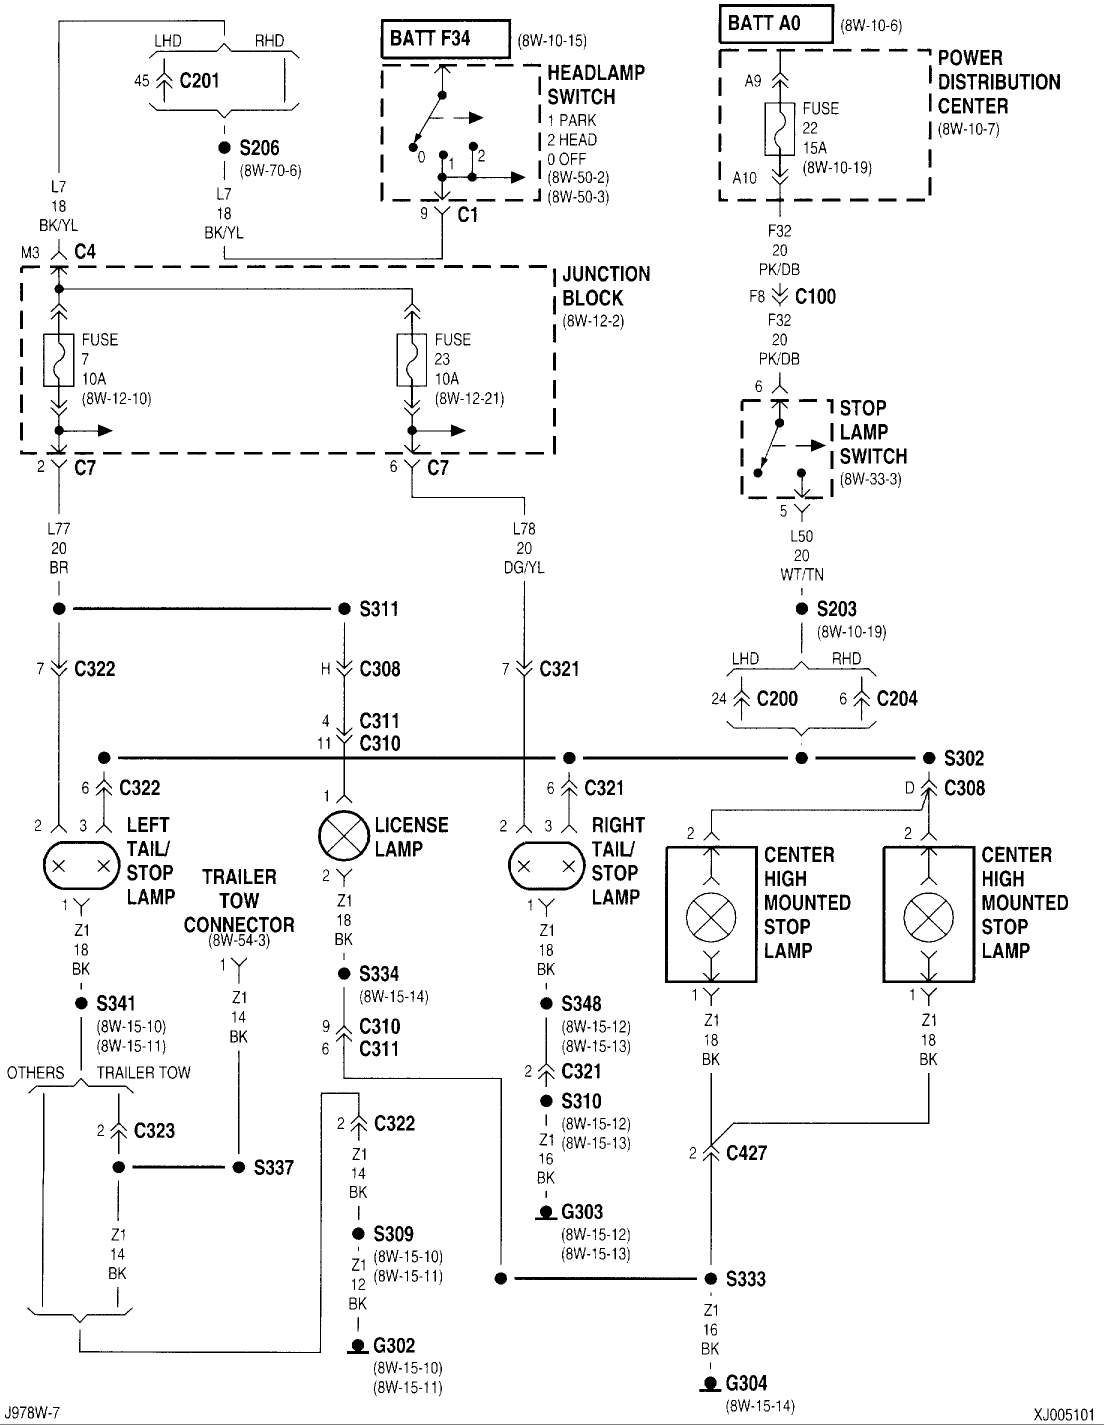 1996 Grand Cherokee Rear Light Wiring Diagram Electrical Problems I Just Purchased A Jeep Cherokee